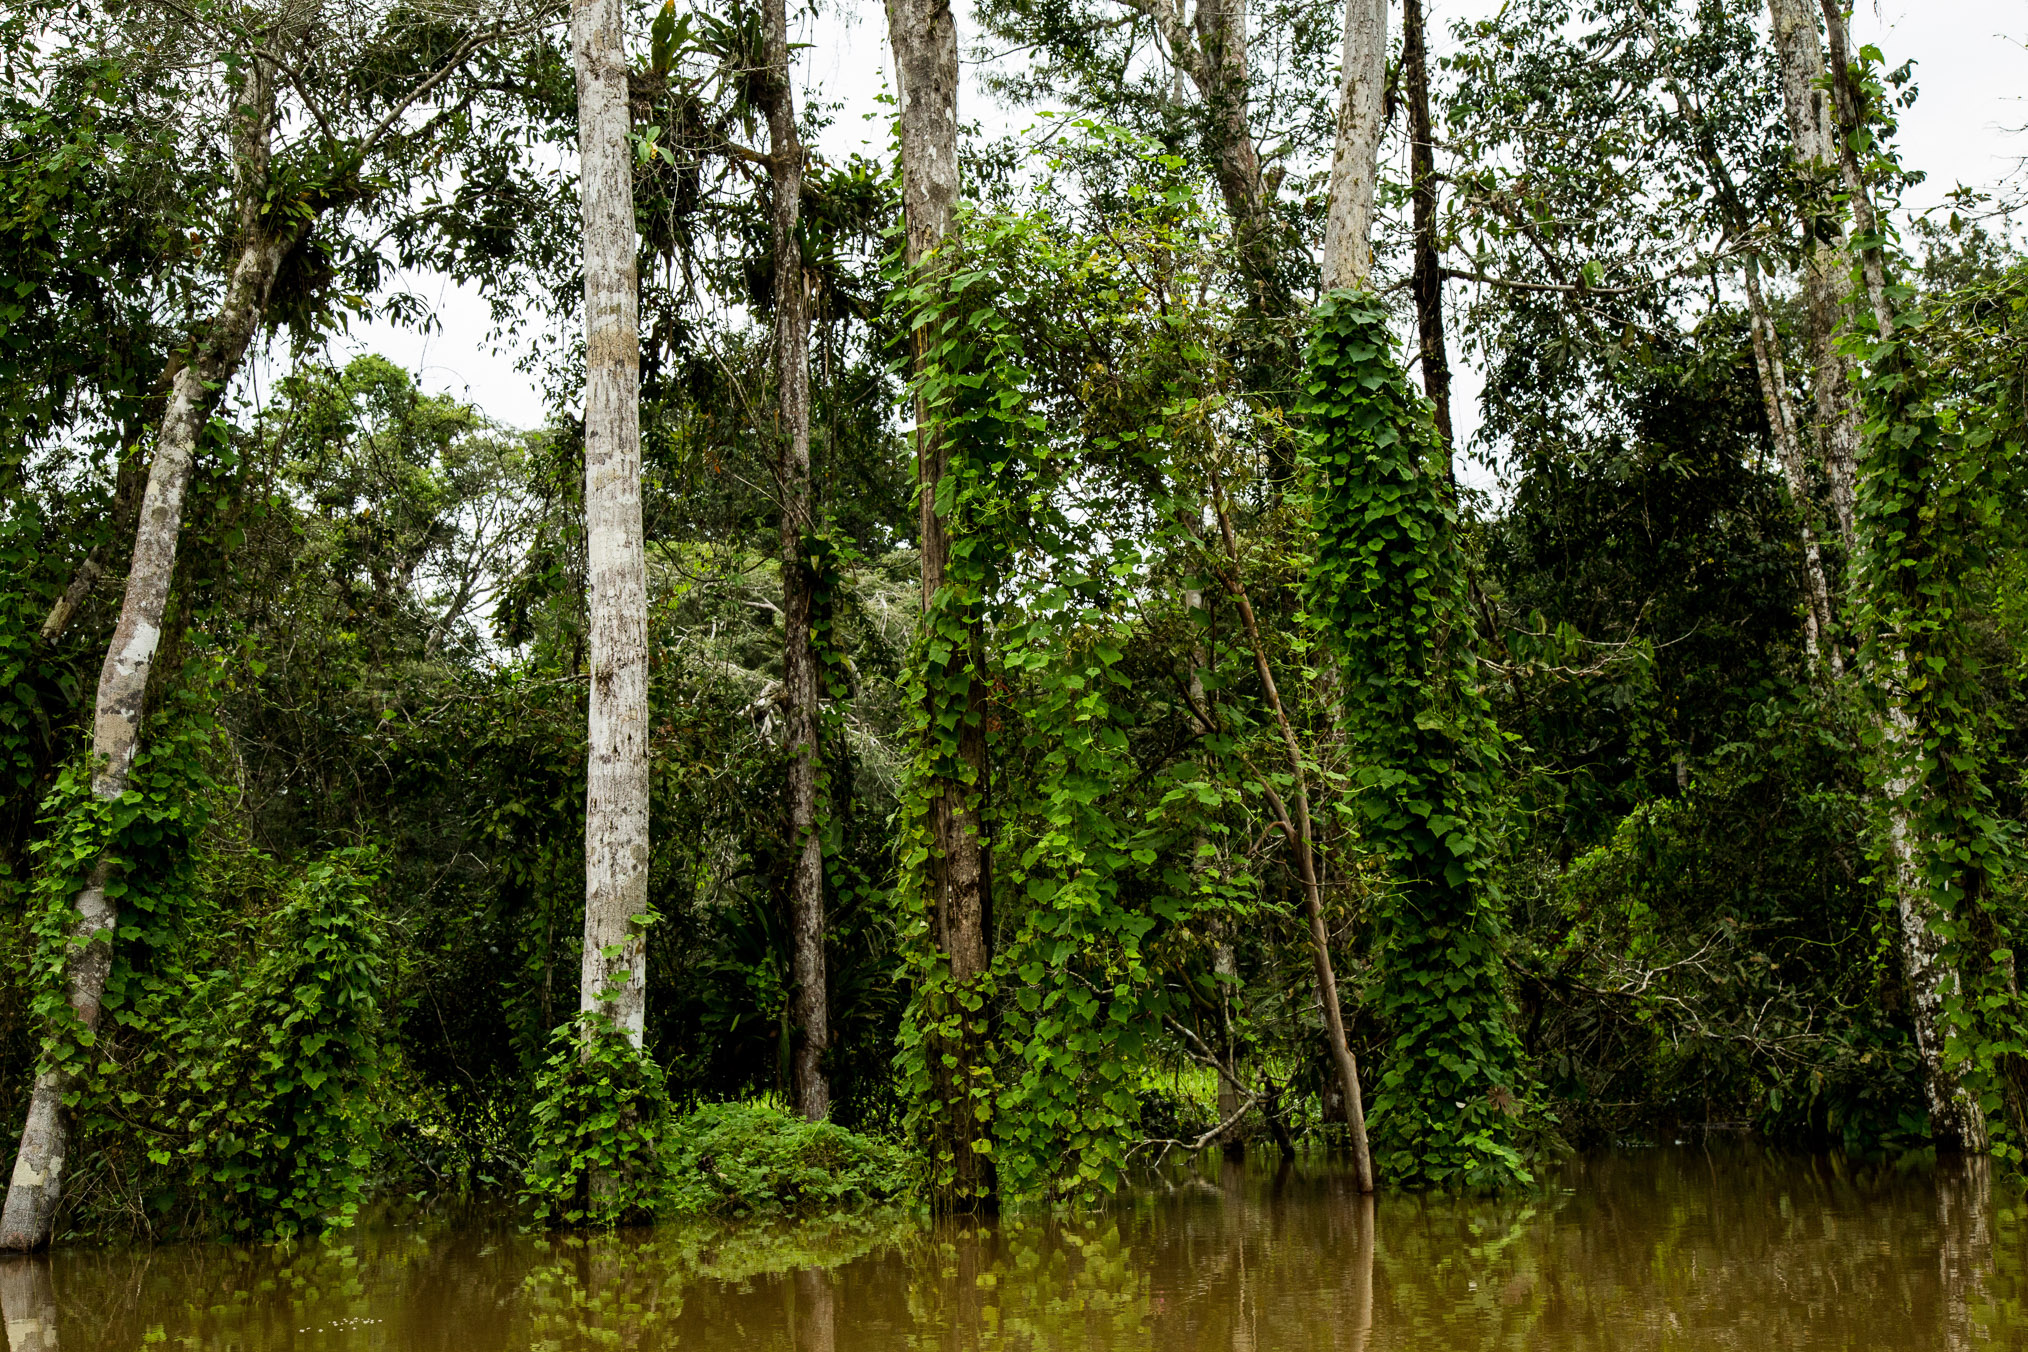 Morning glory vines create thick mats on nearly every vertical surface of the flooded forest.